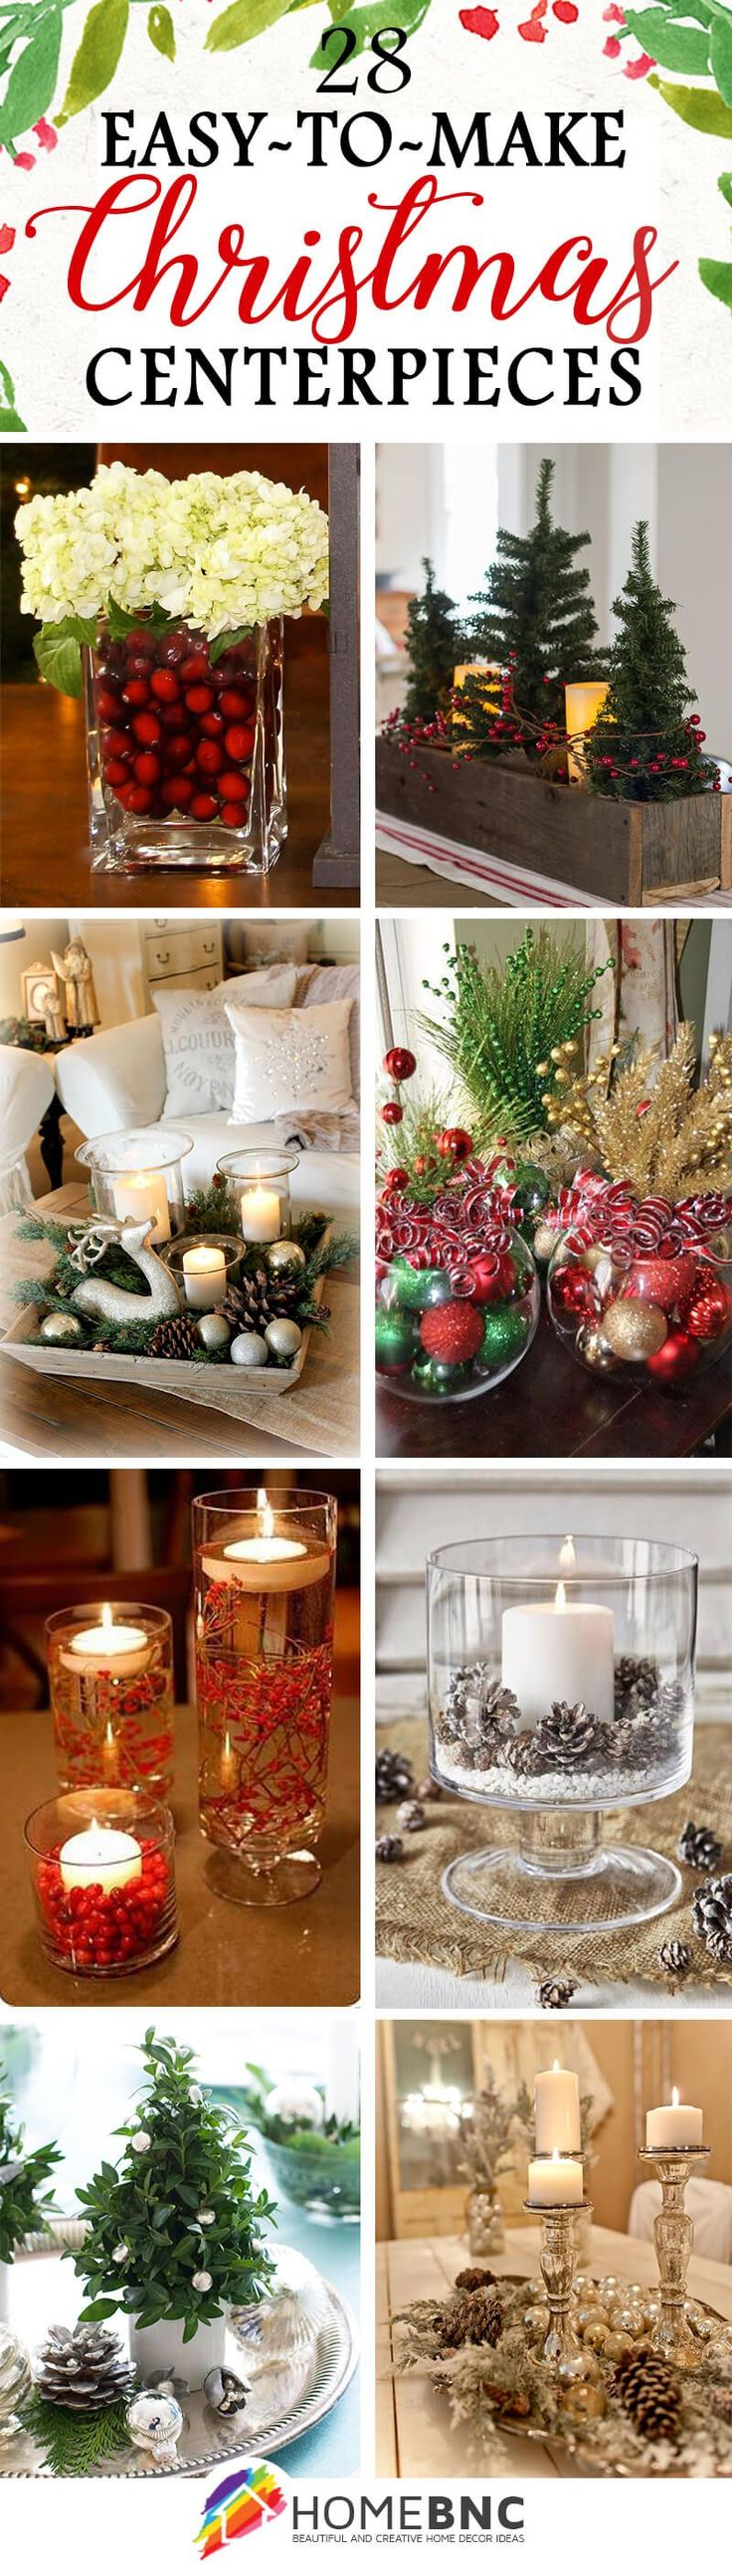 Best 25+ Christmas centerpieces ideas on Pinterest | Holiday ...